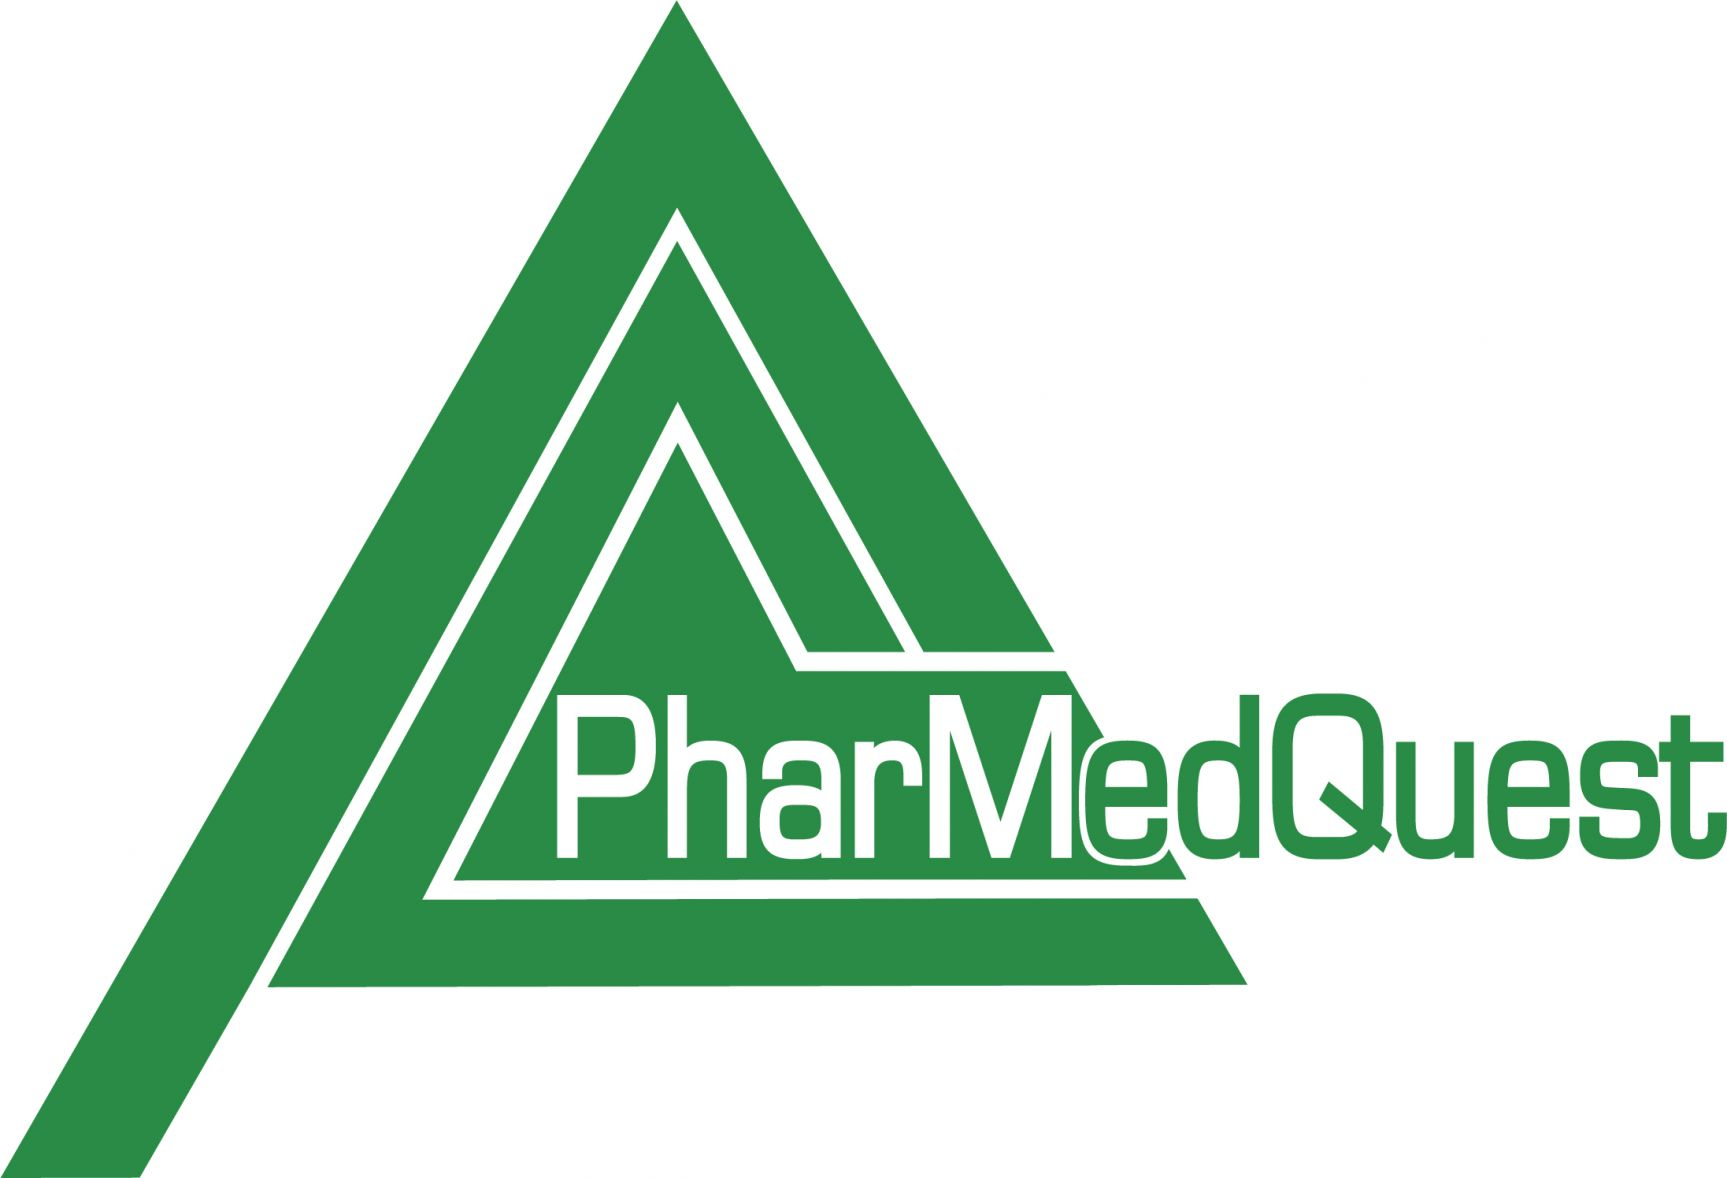 PharMedQuest Logo